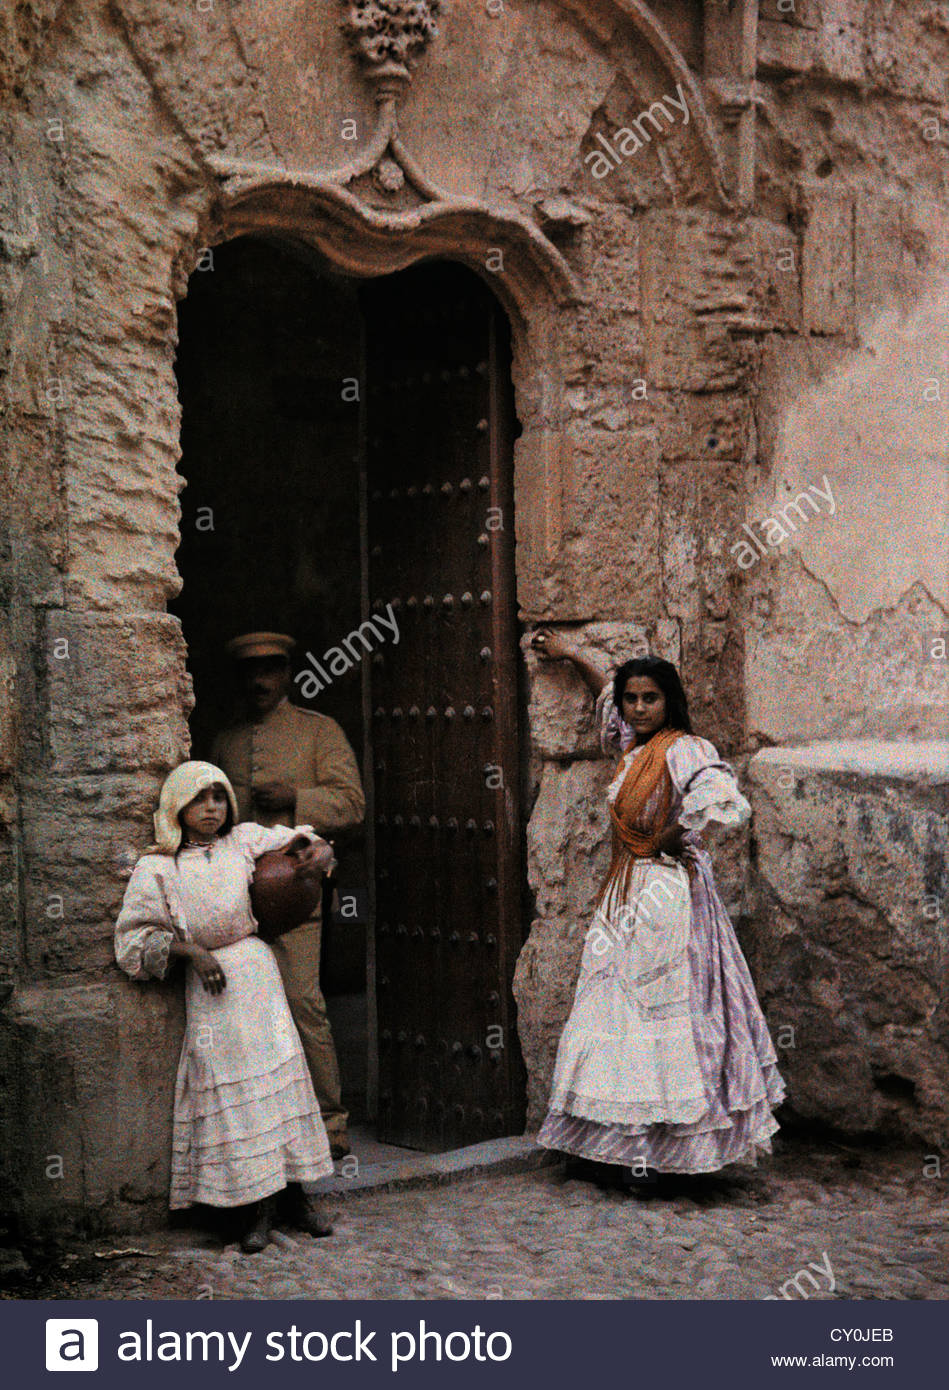 Two girls wait at a church door in Toledo. - Stock Image